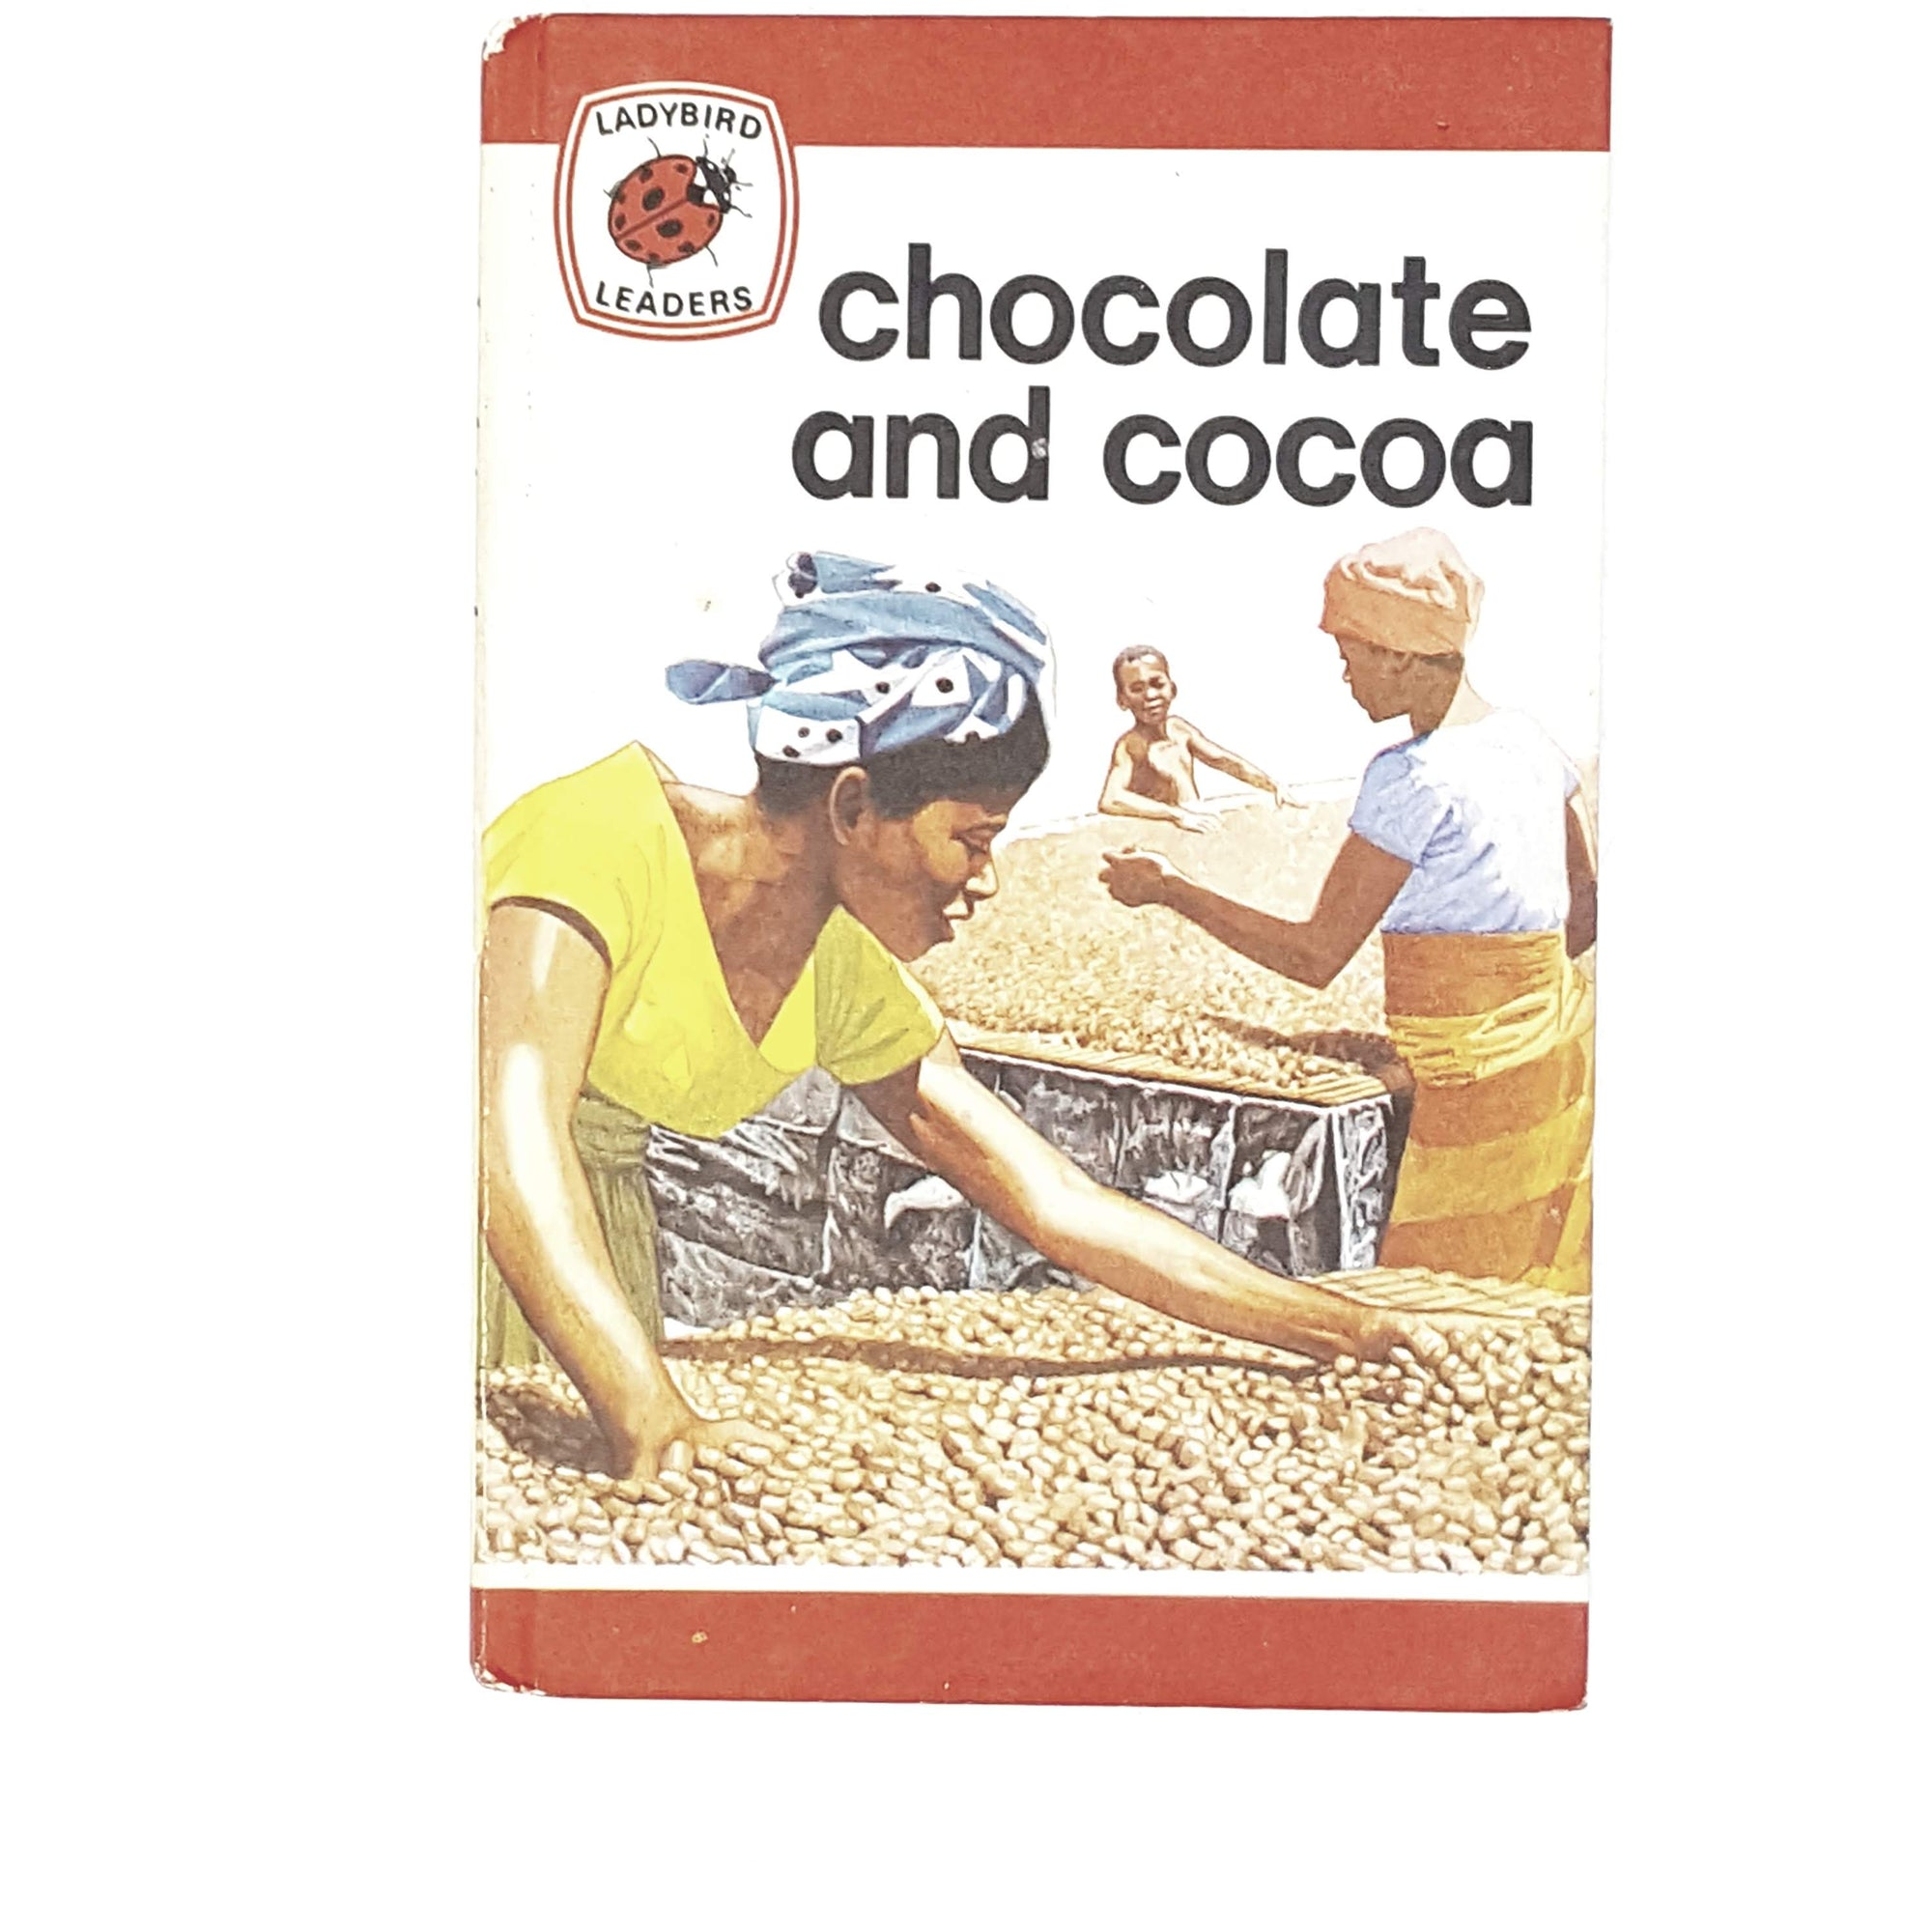 Ladybird Leaders: Chocolate and Cocoa 1977